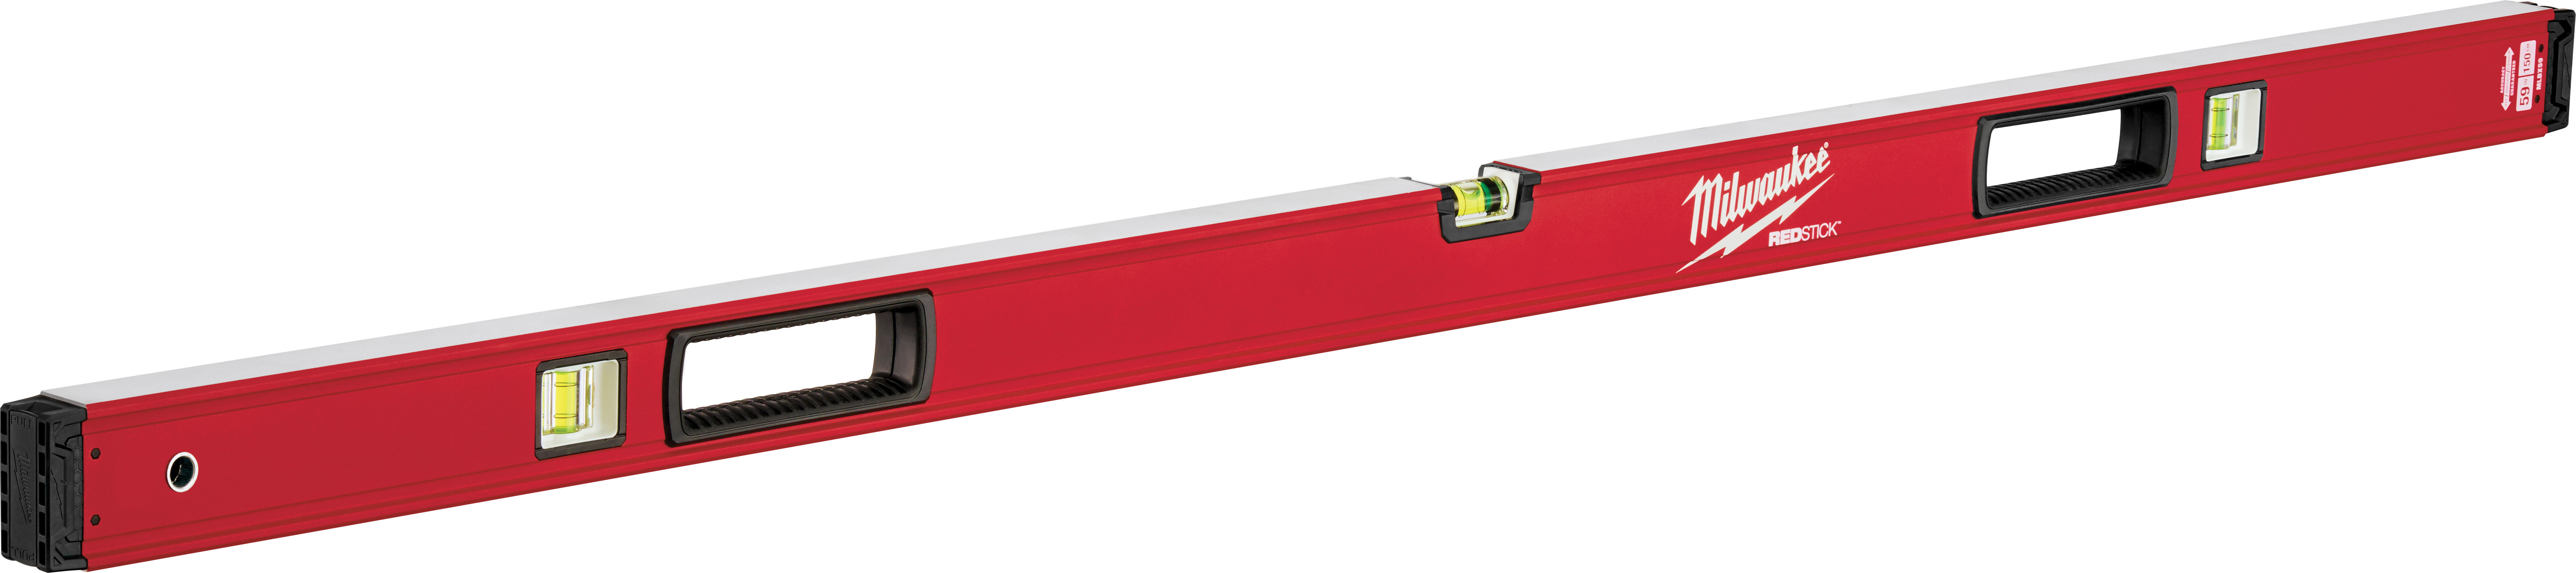 Milwaukee® REDSTICK™ MLBX59 Box Level, 59 in L, 3 Vials, Aluminum, (1) Level, (2) Plumb Vial Position, 0.0005 in/in Accuracy